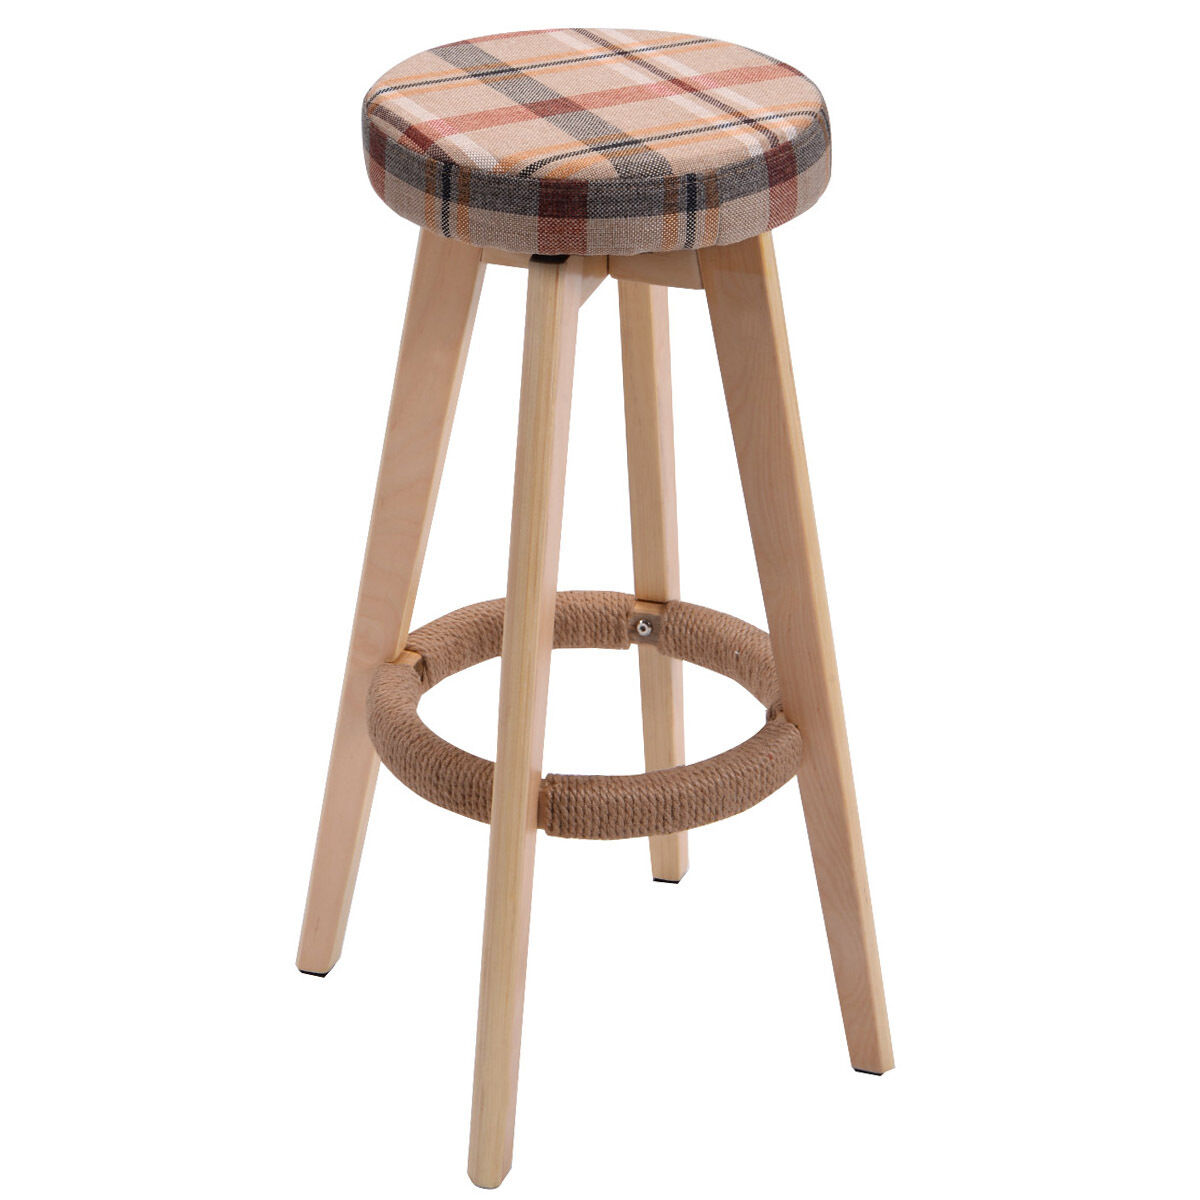 chair stools wooden childrens wicker chairs uk round linen bar stool dining counter